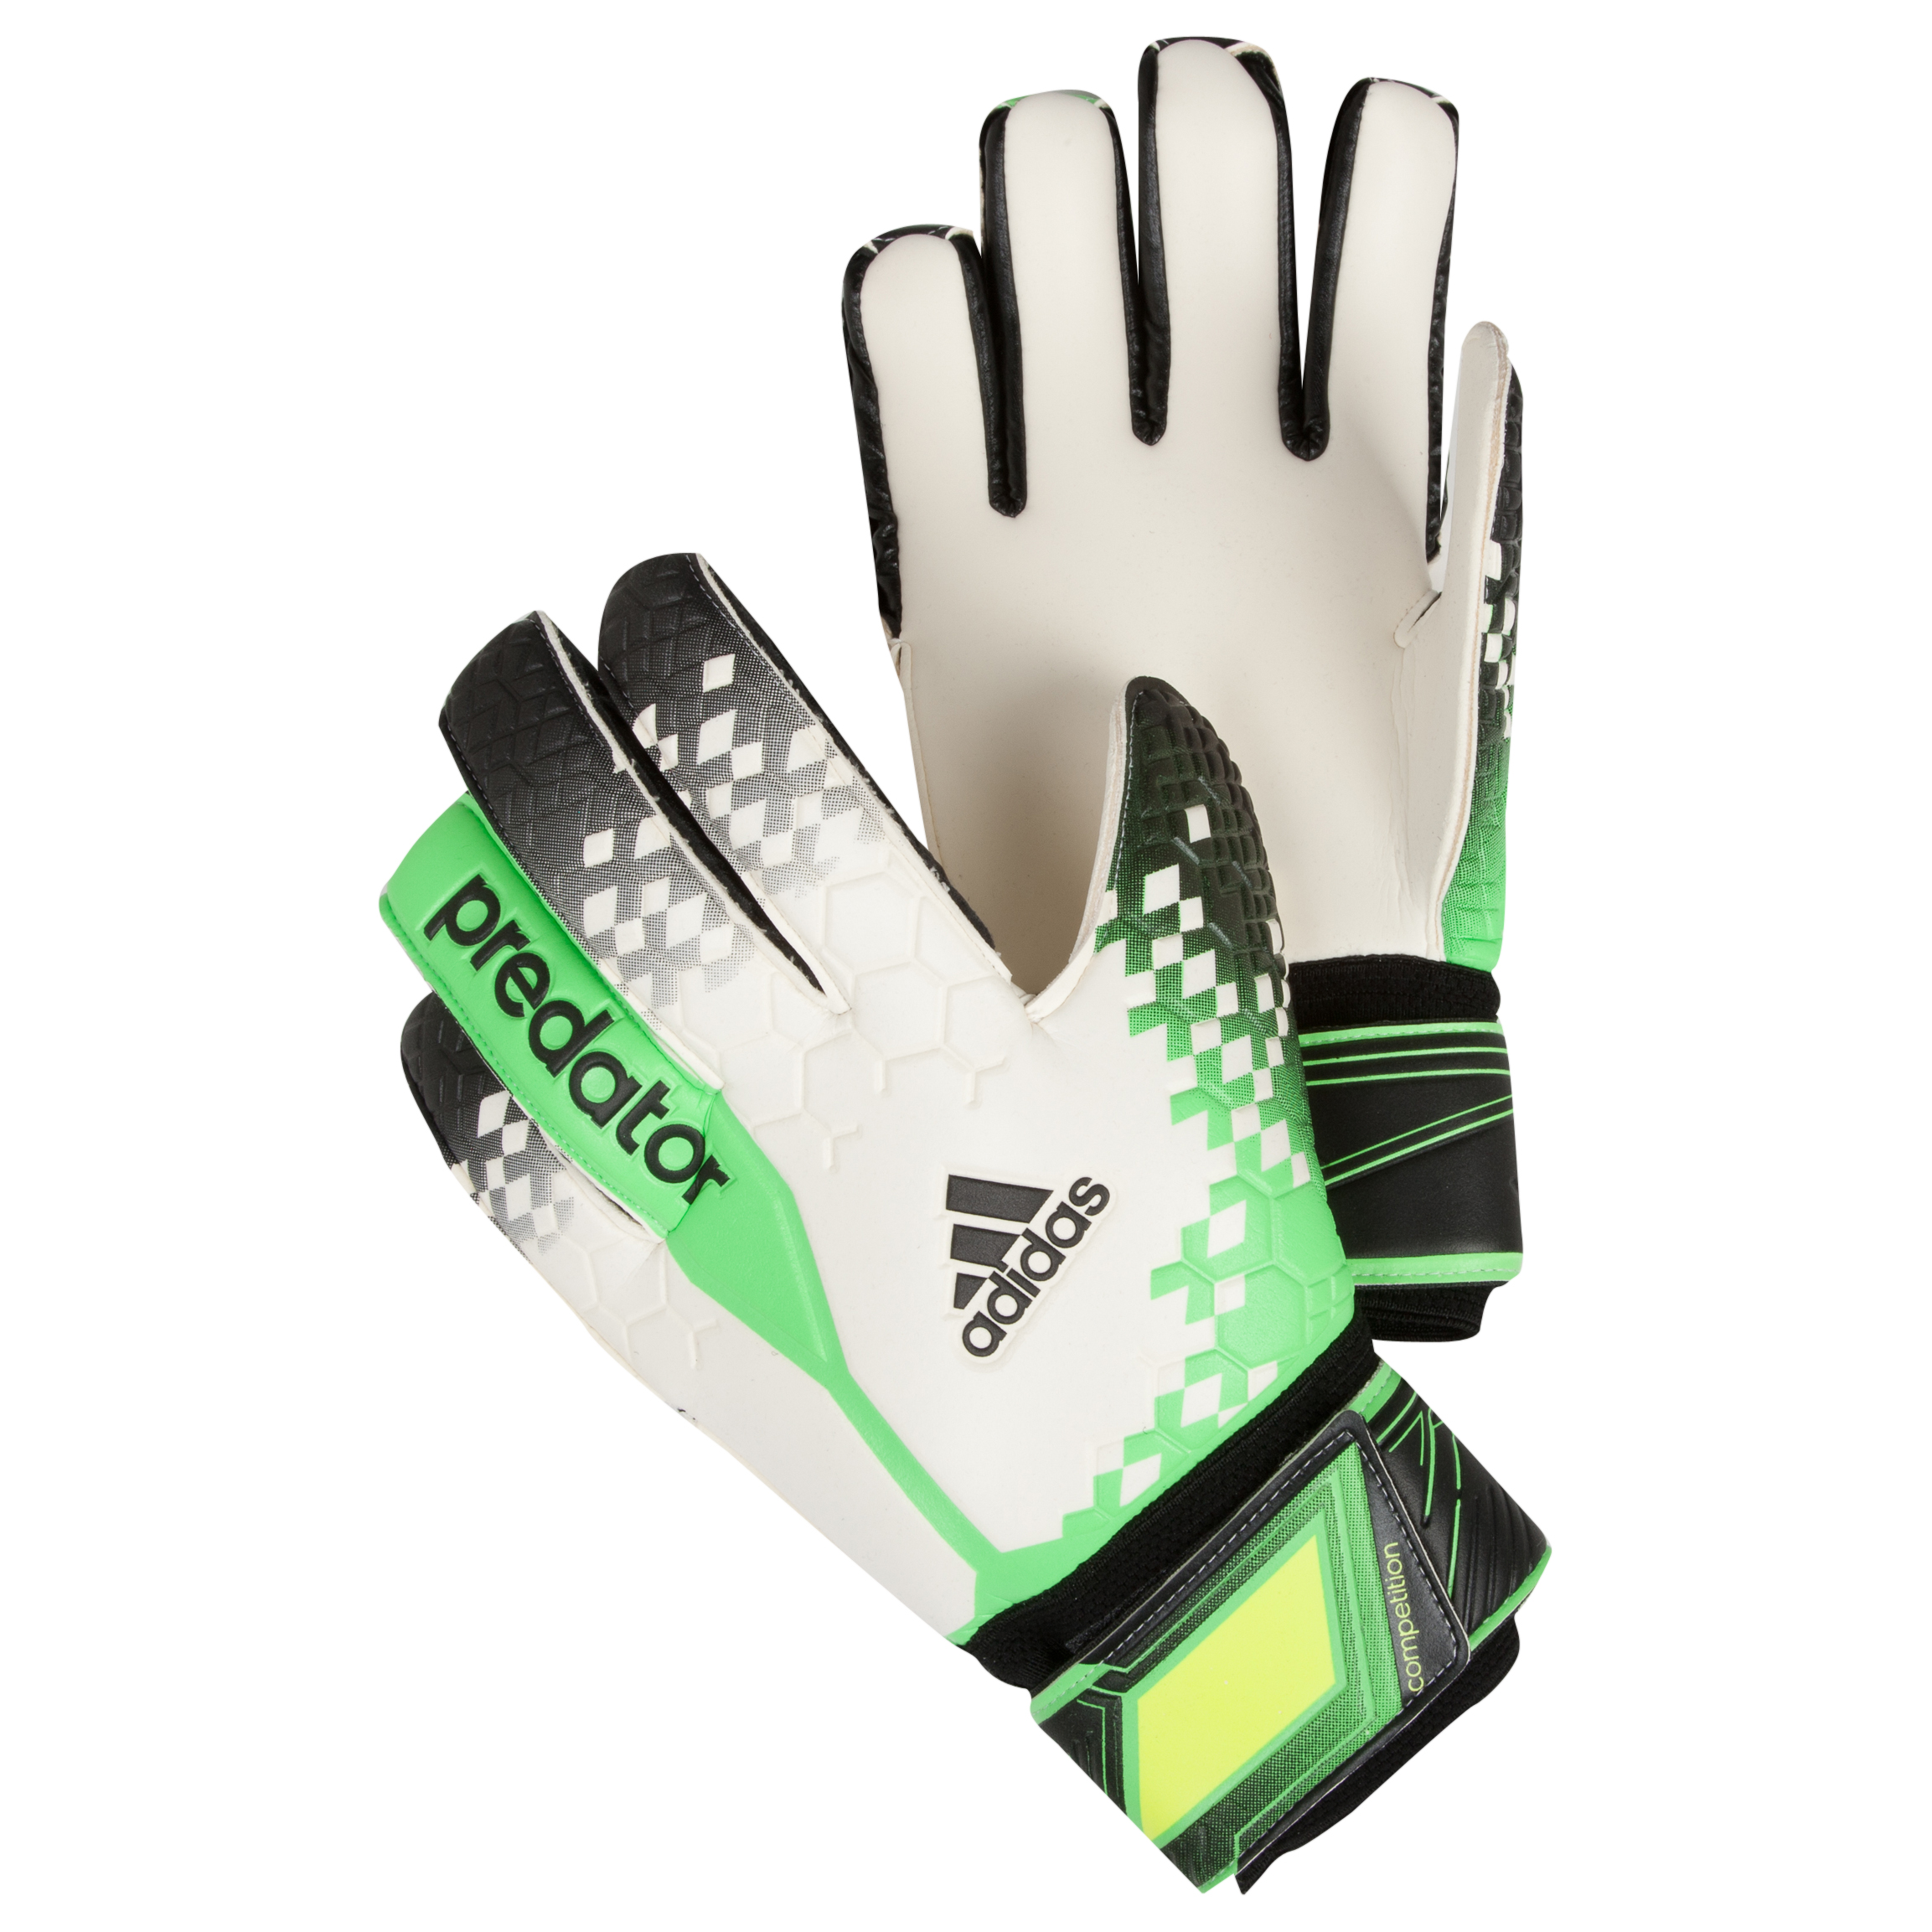 Adidas Predator Comp Goalkeeper Gloves White